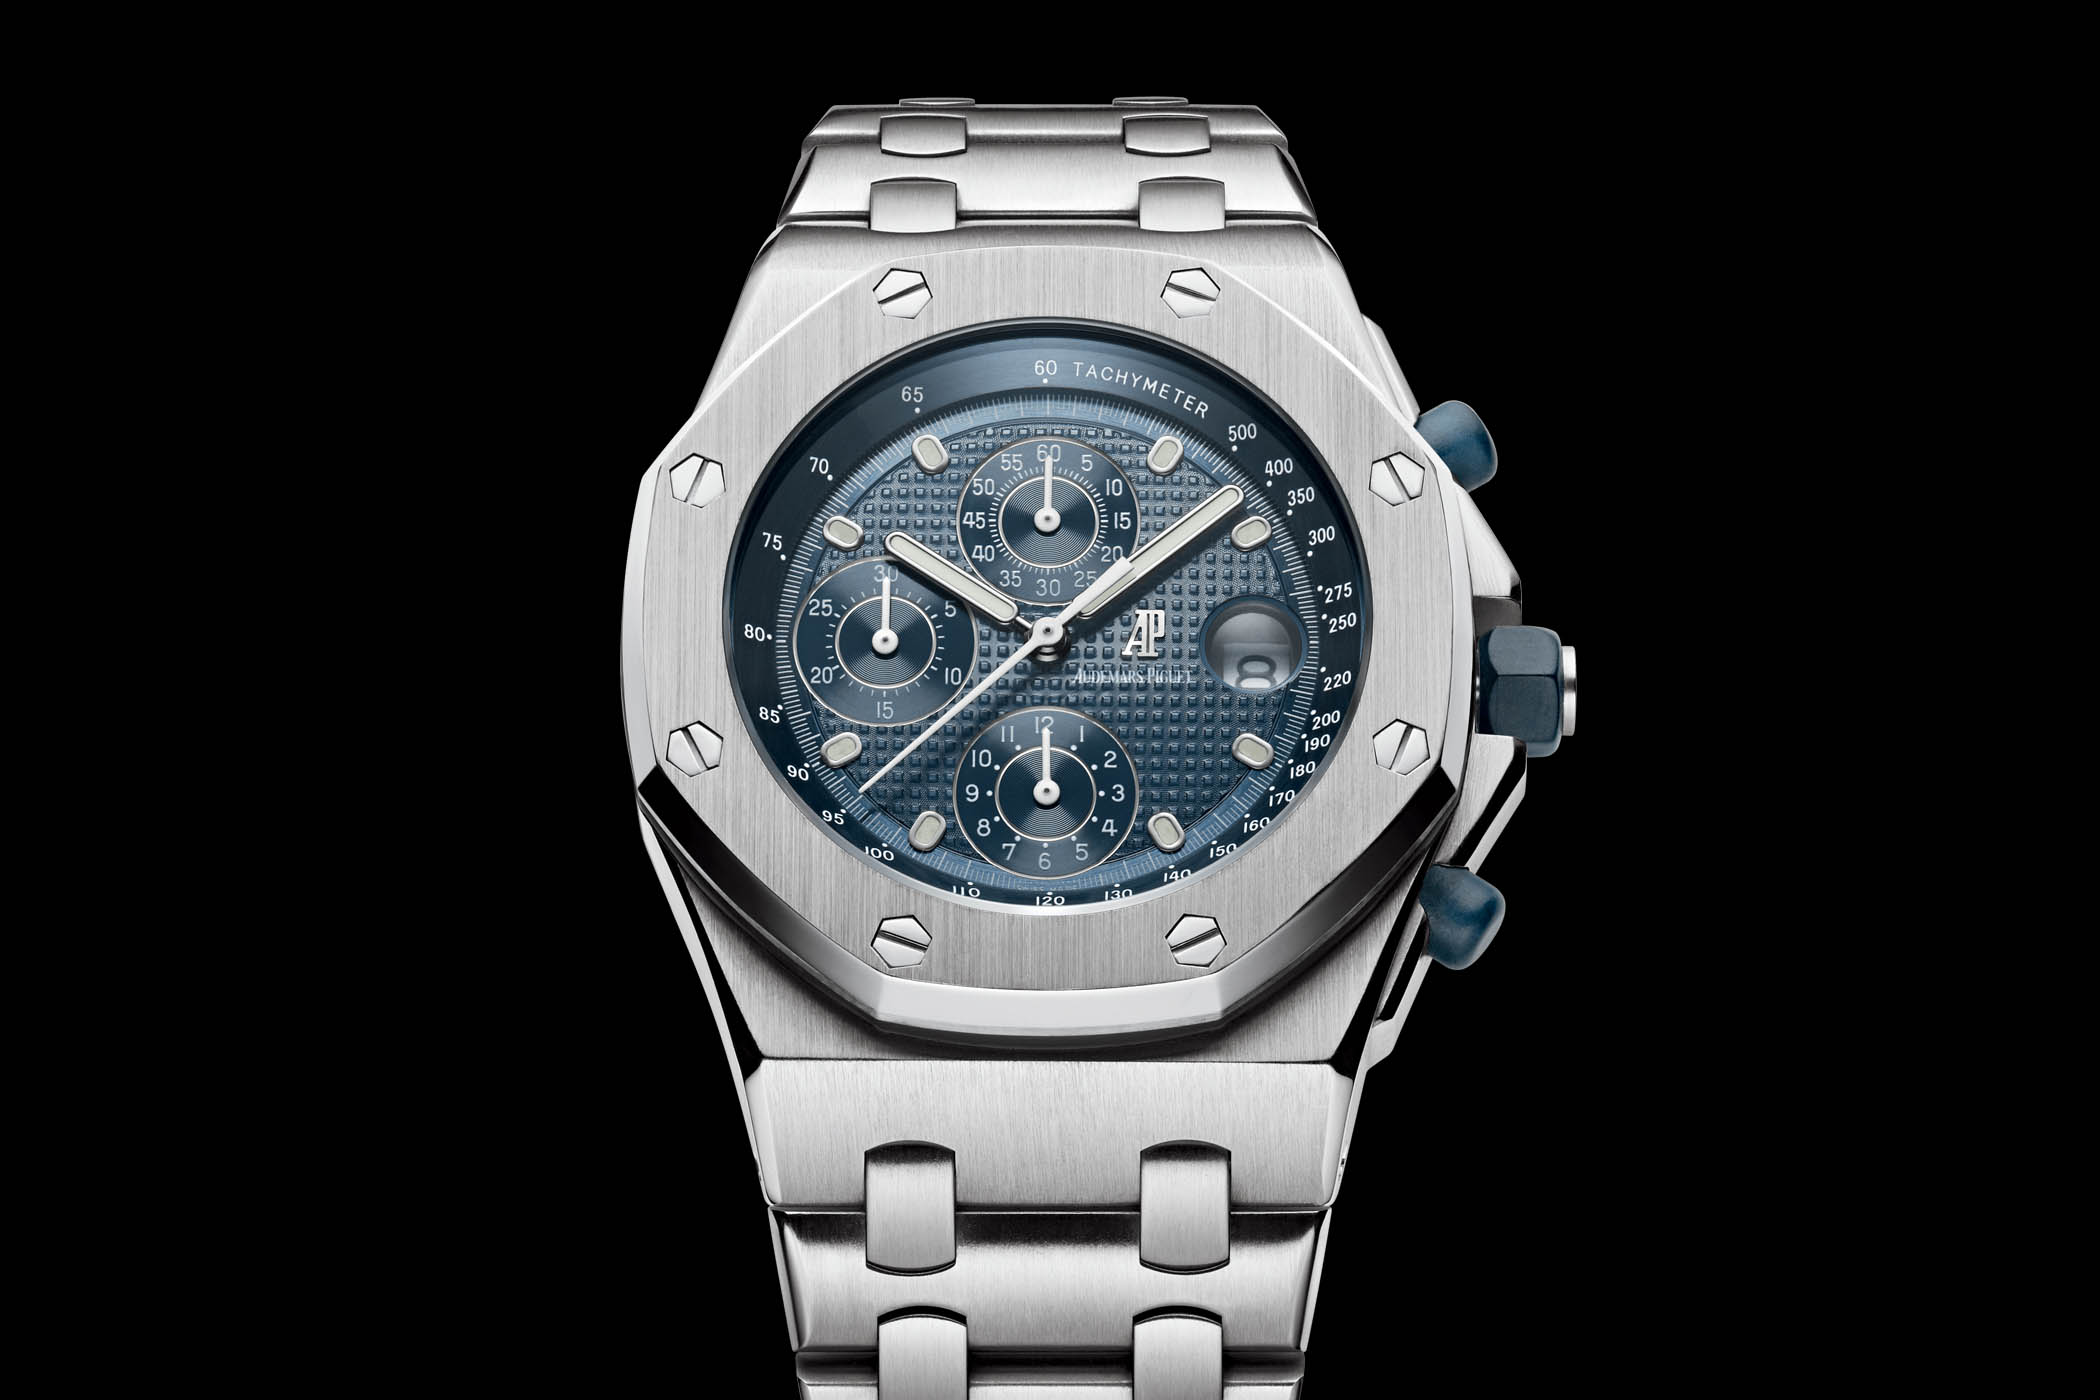 Audemars-Piguet-Royal-Oak-Offshore-1993.jpg